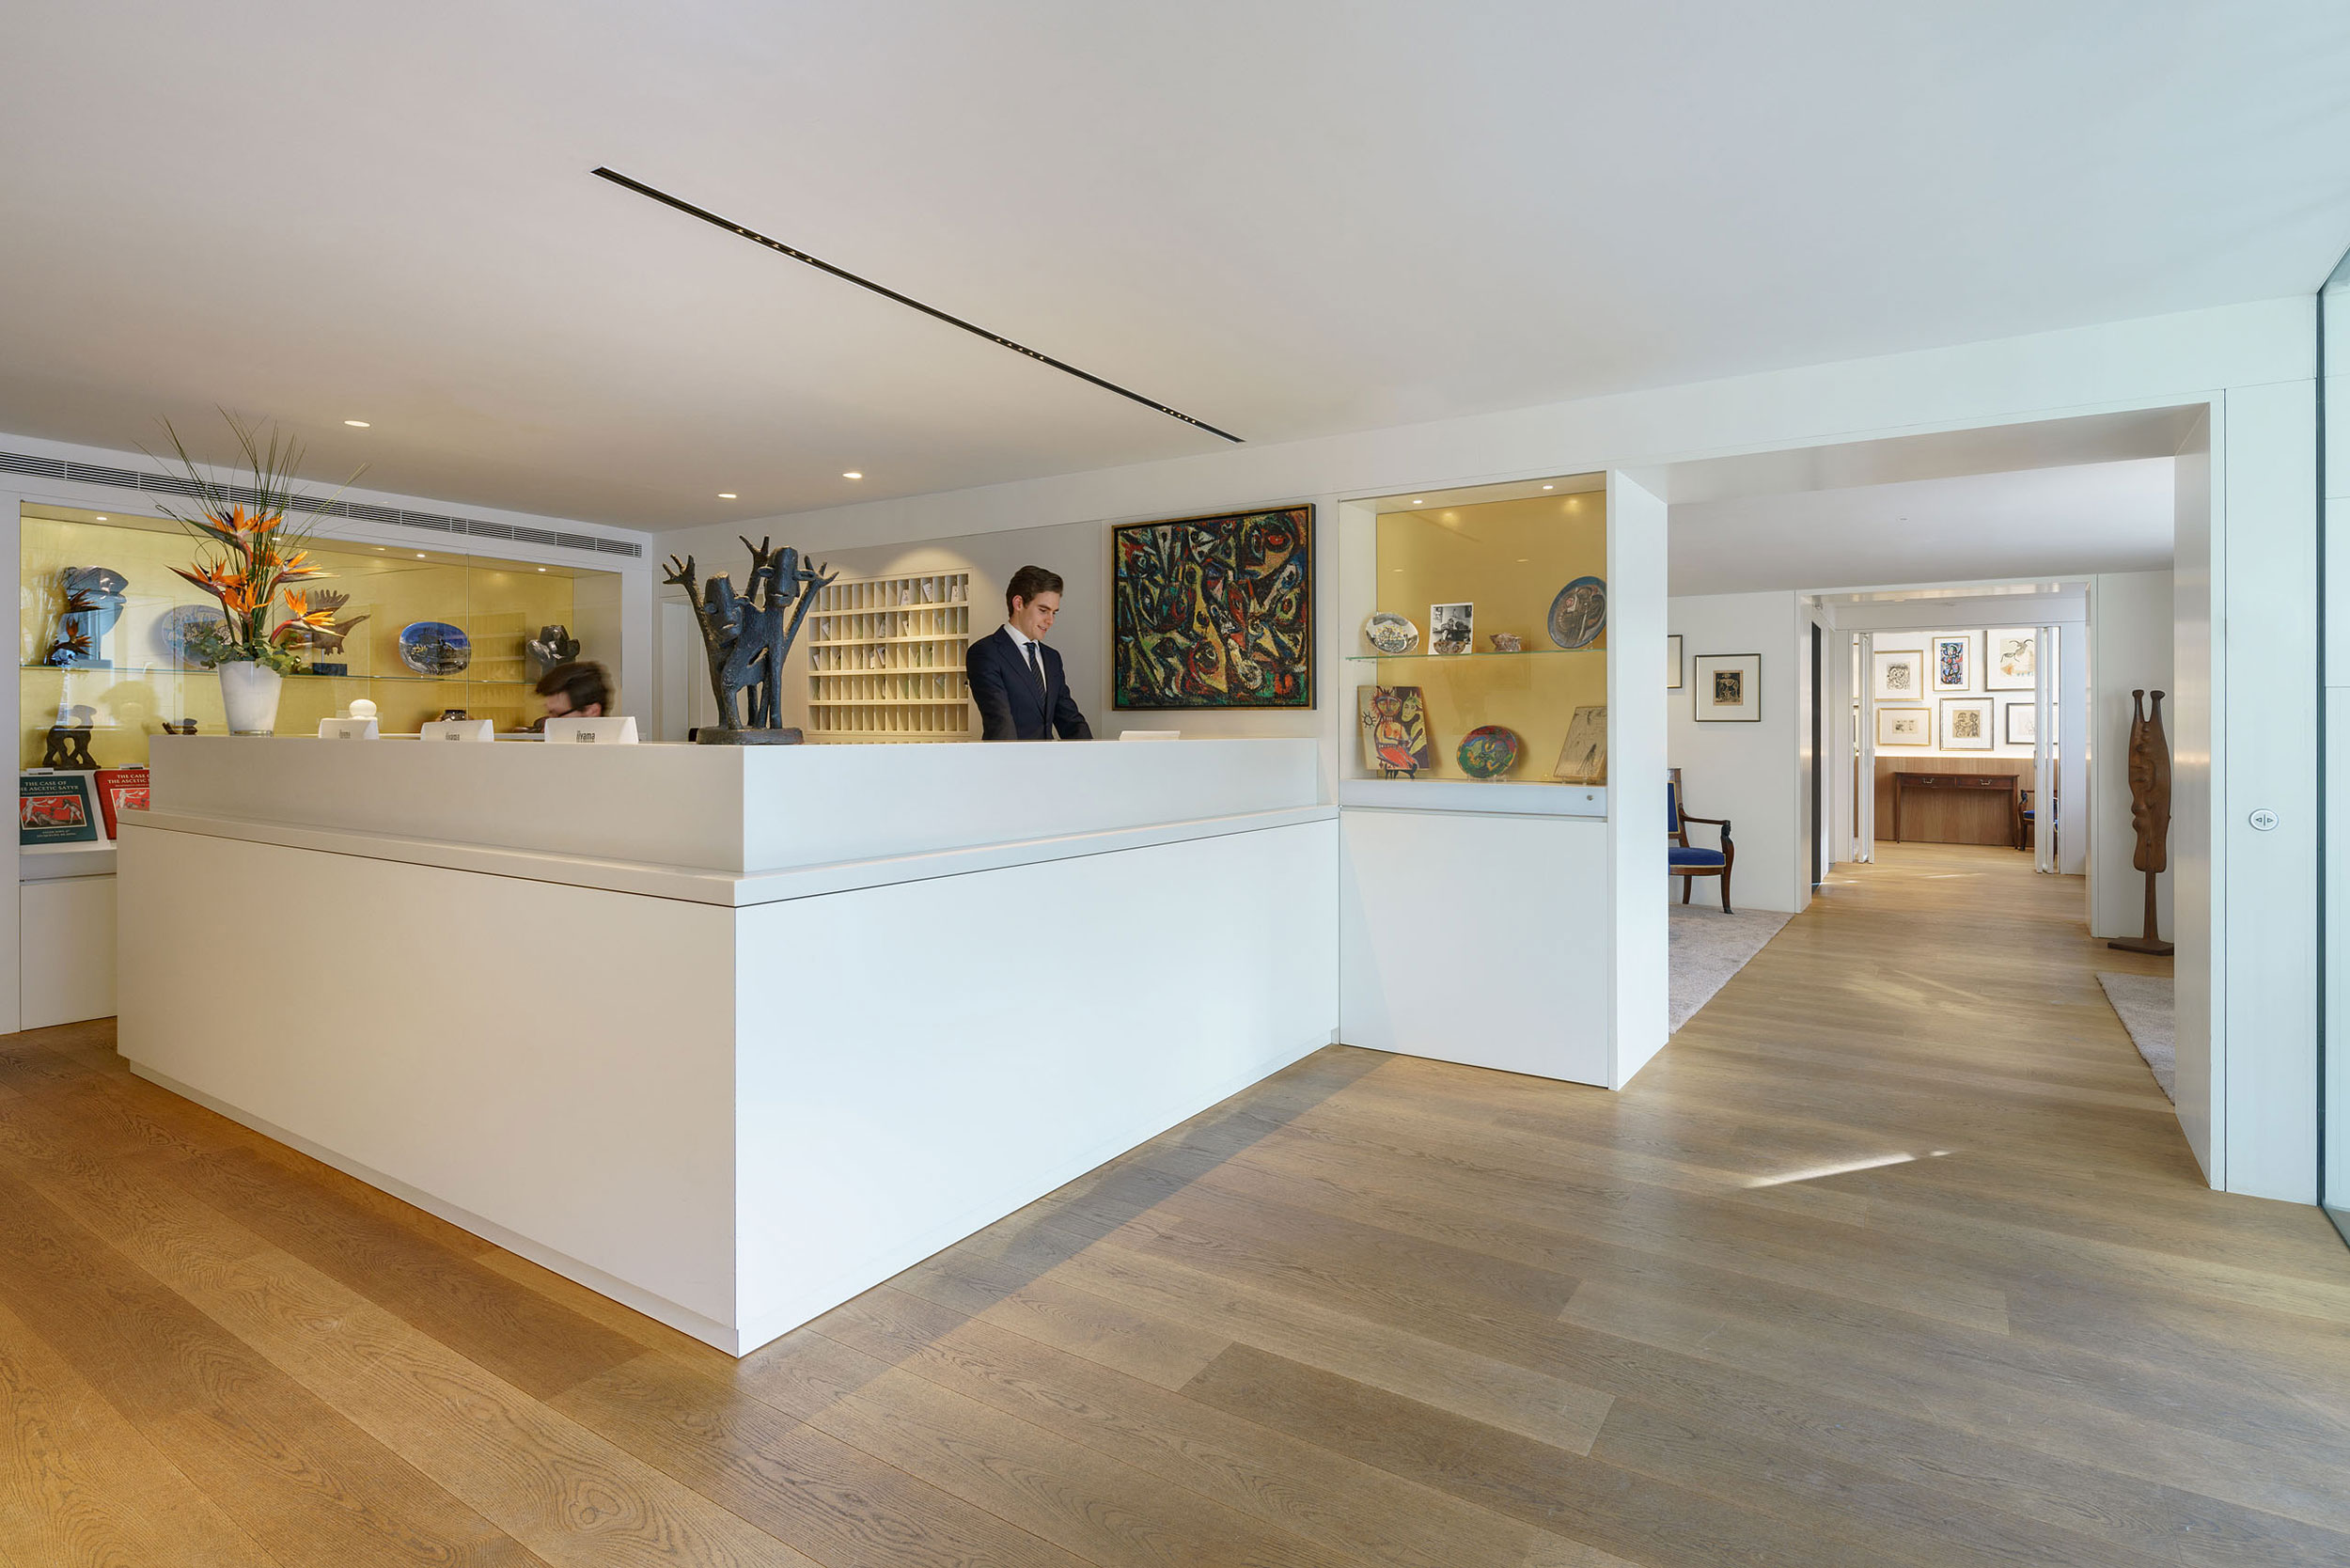 Our reception facing the Herengracht in Amsterdam designed by Cruz y Ortiz Arquitectos